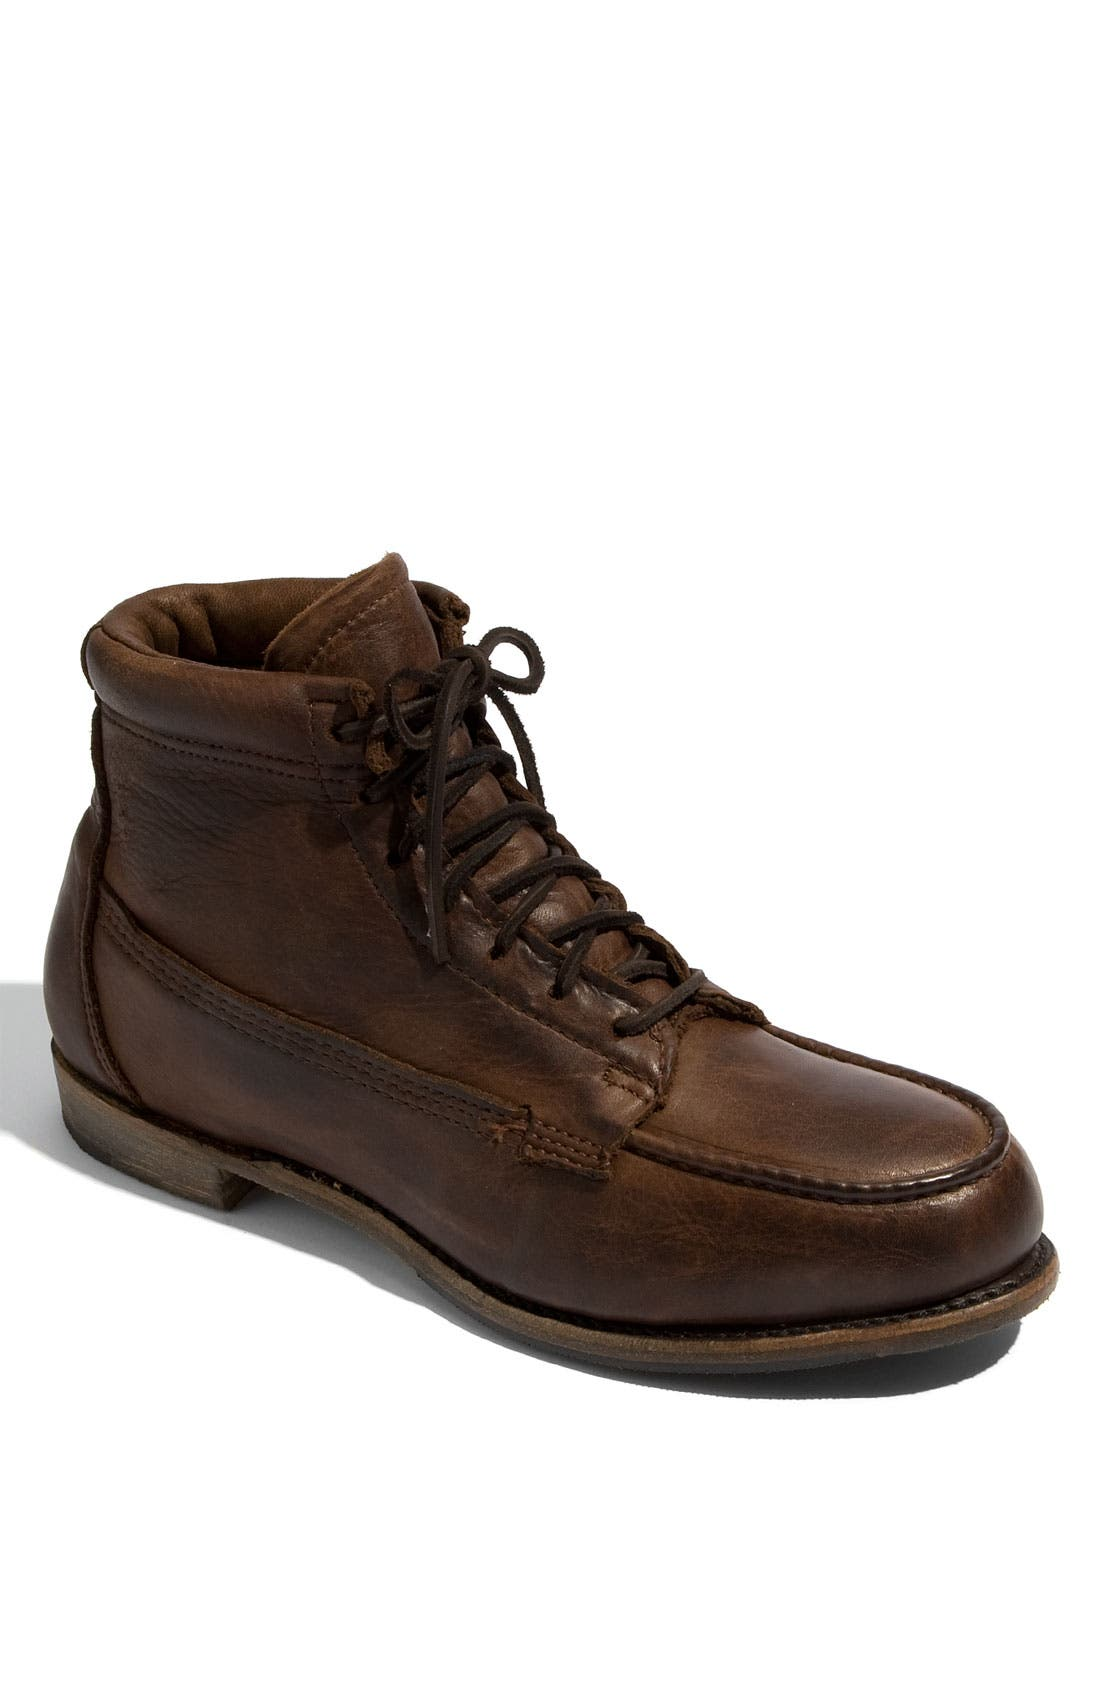 Alternate Image 1 Selected - Vintage Shoe Company 'Vincent' Boot (Online Only)